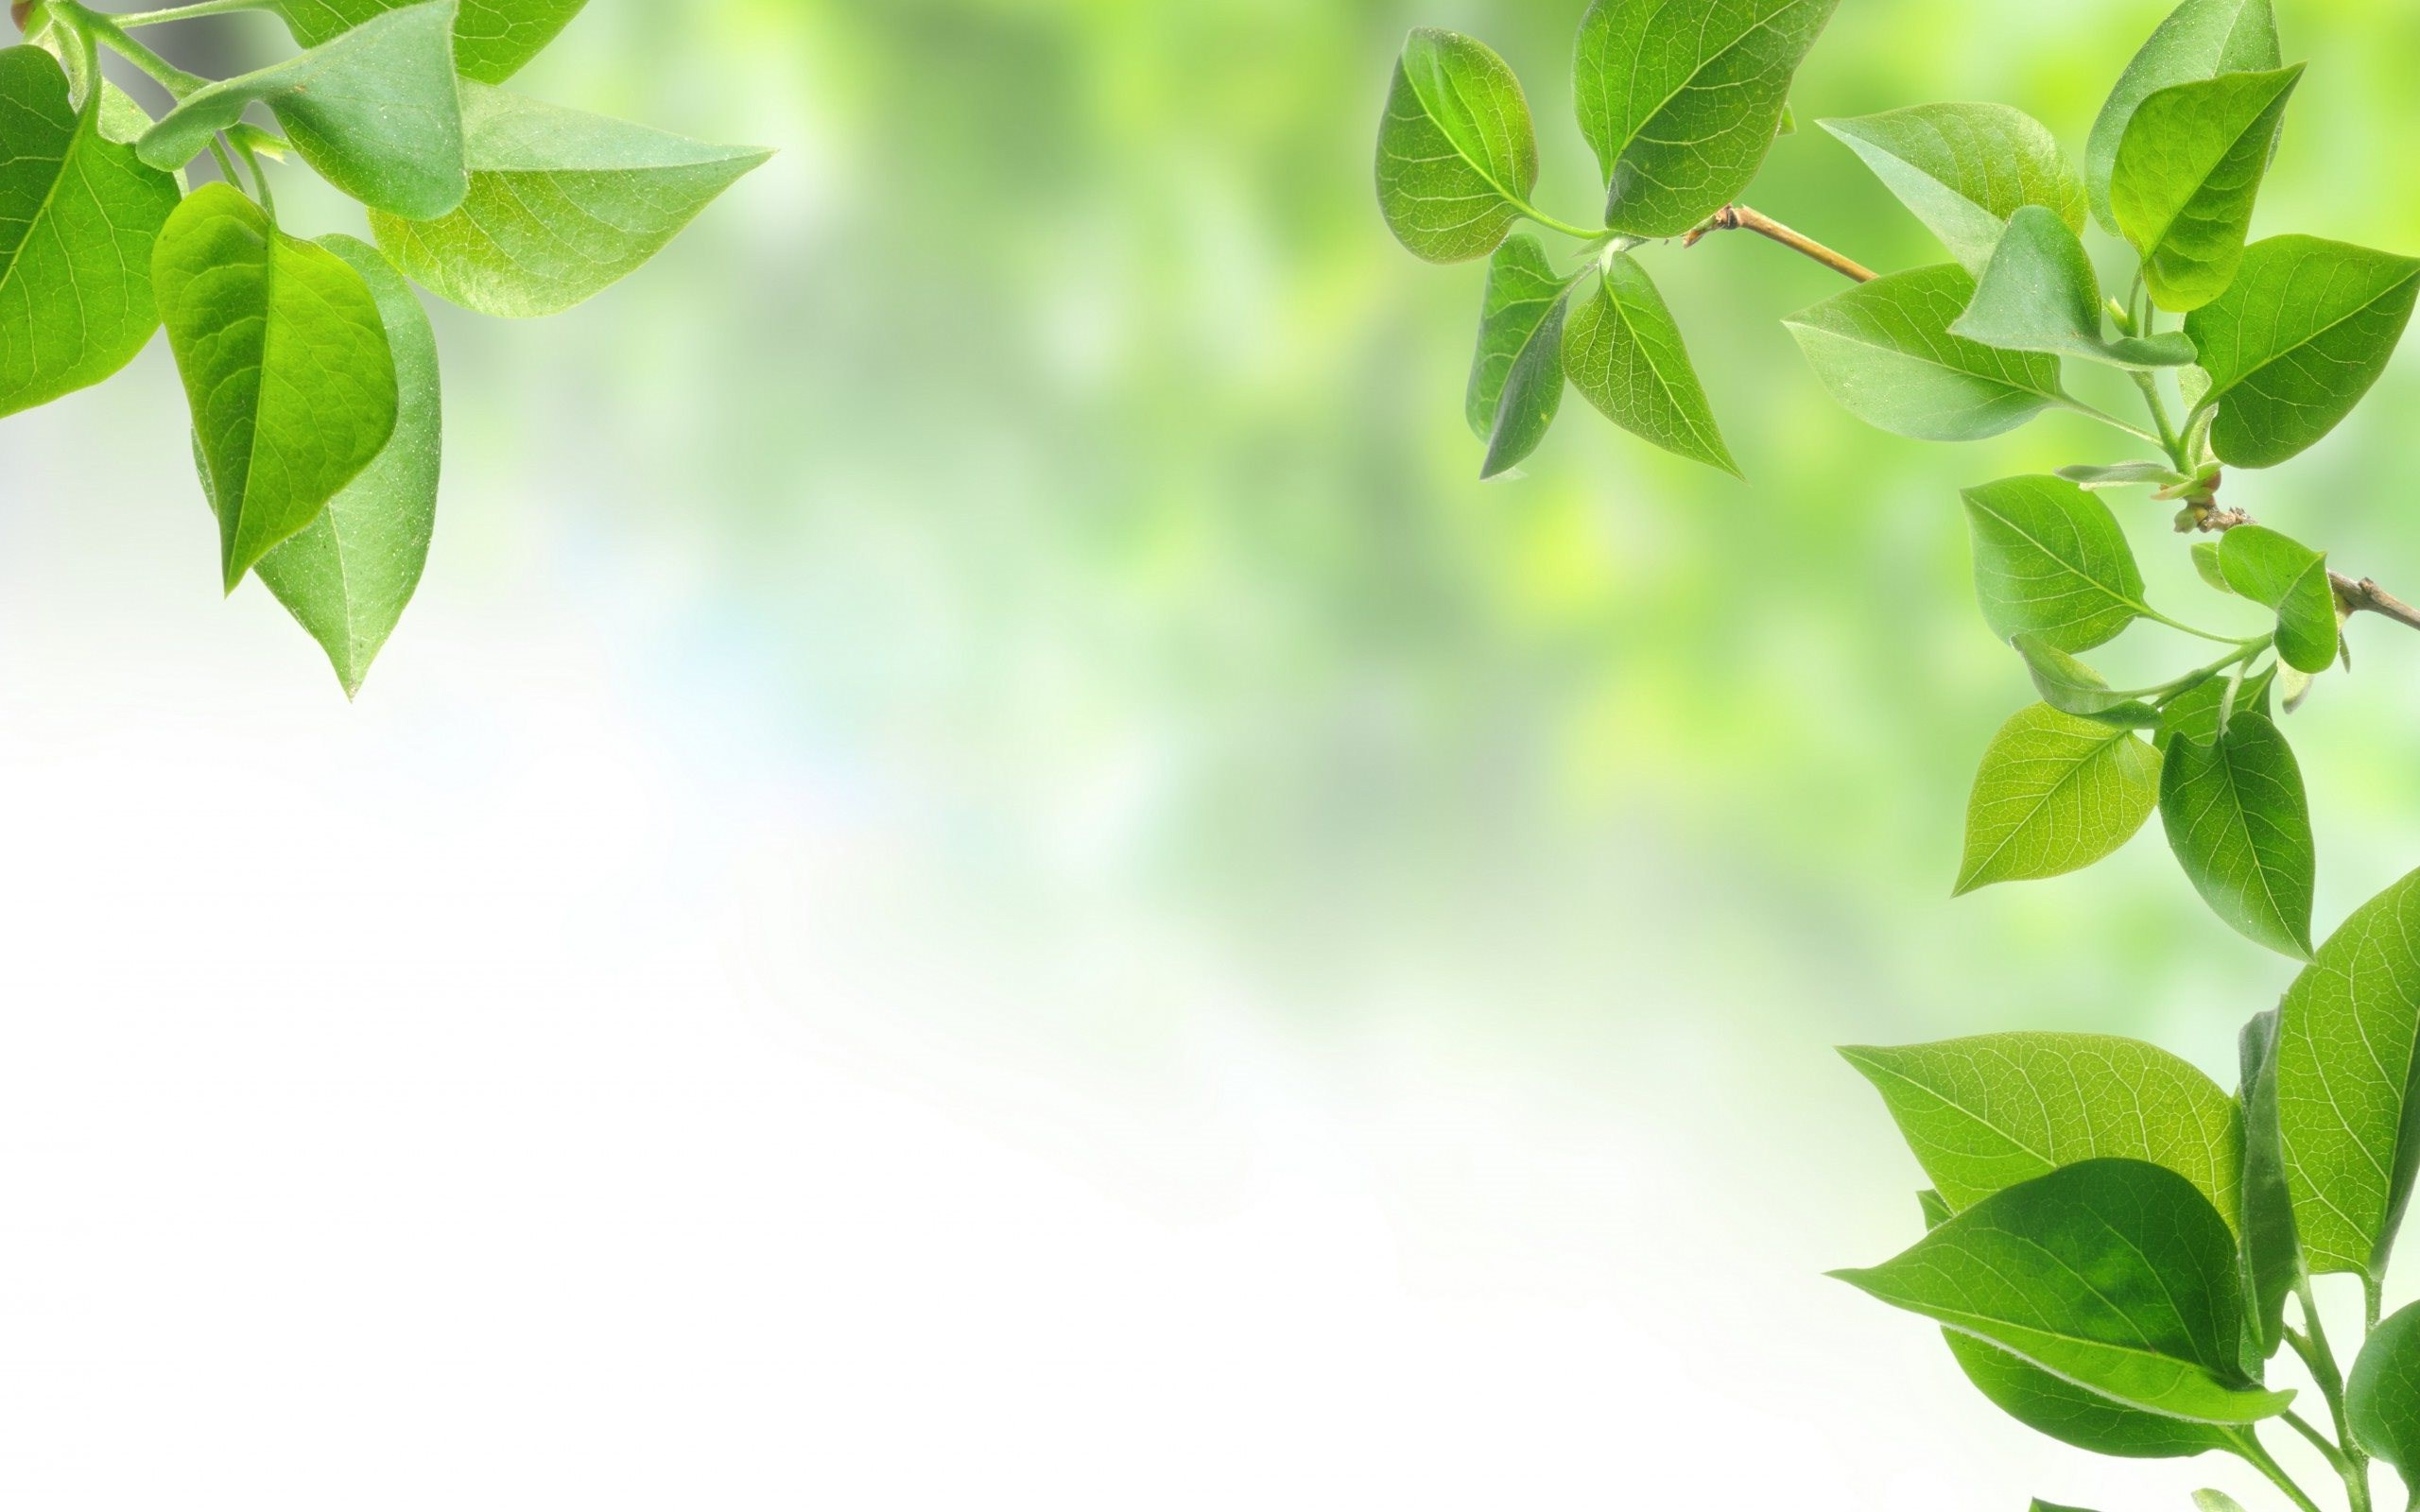 Background Hd Green Png - Green leaves wallpaper background hd